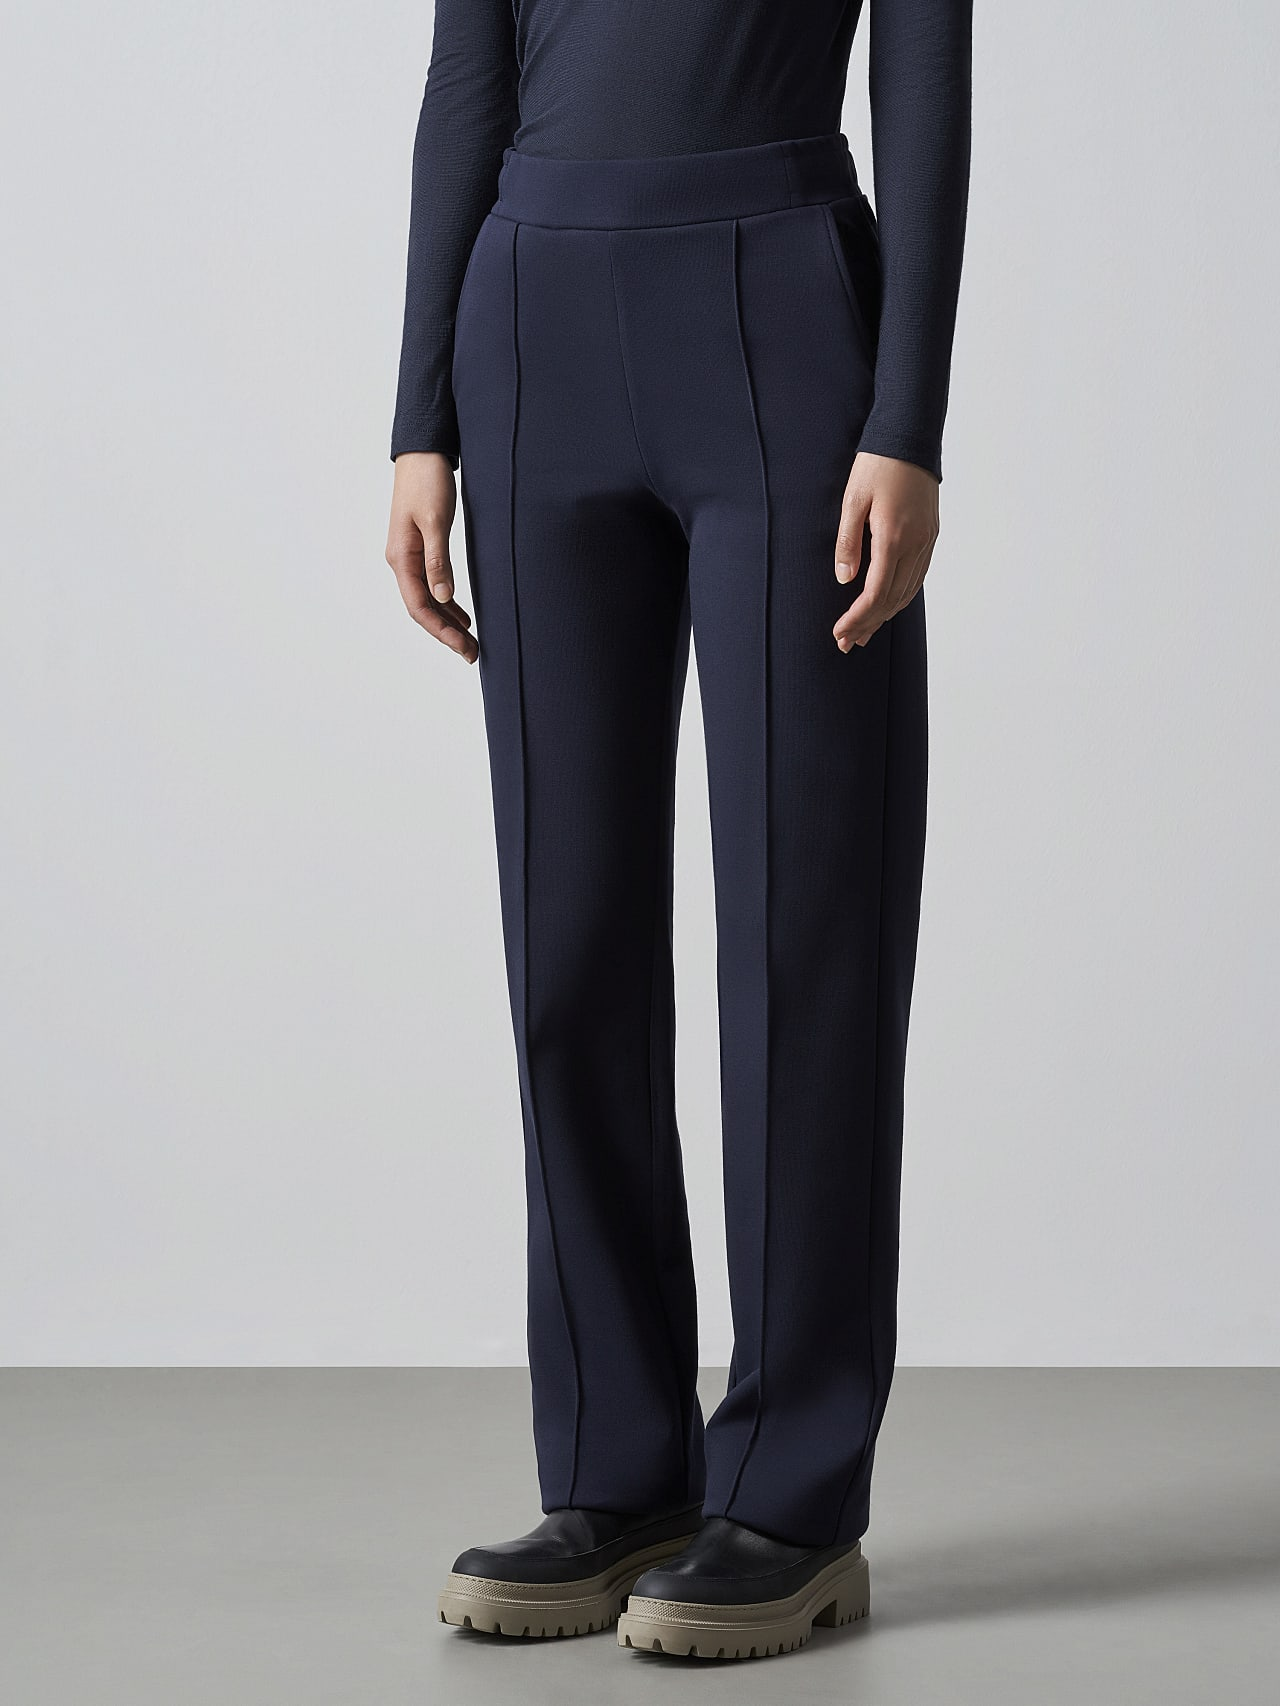 POVOA V1.Y5.02 Relaxed-Fit Premium Sweat Pants navy Model shot Alpha Tauri